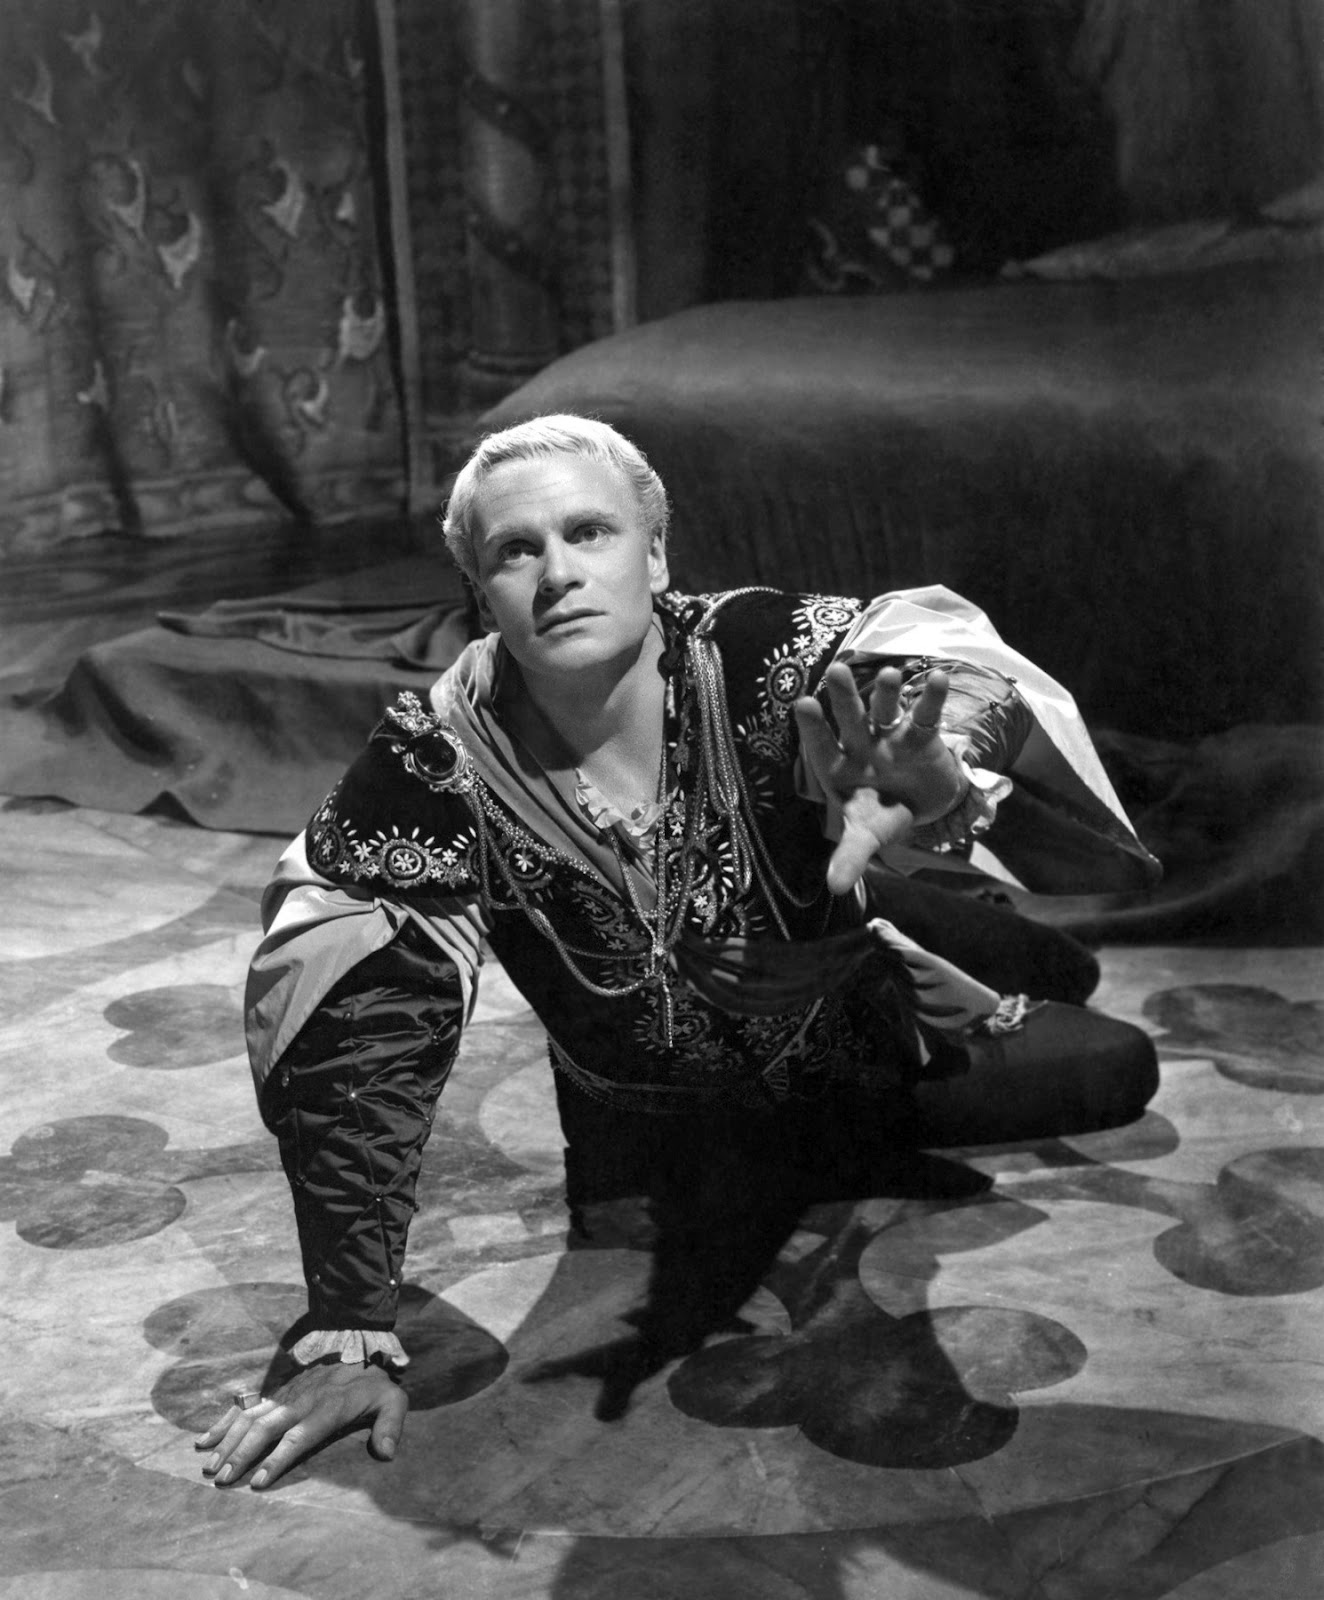 why hamlet was so hesitative in Polonius tells _____ to spy on his son _____ in paris banter with r & g shows hamlet isn't great friends with them or they don't recognize him because he's changed so much which do you think hamlet shows he's suspicious of their motives in coming to court.